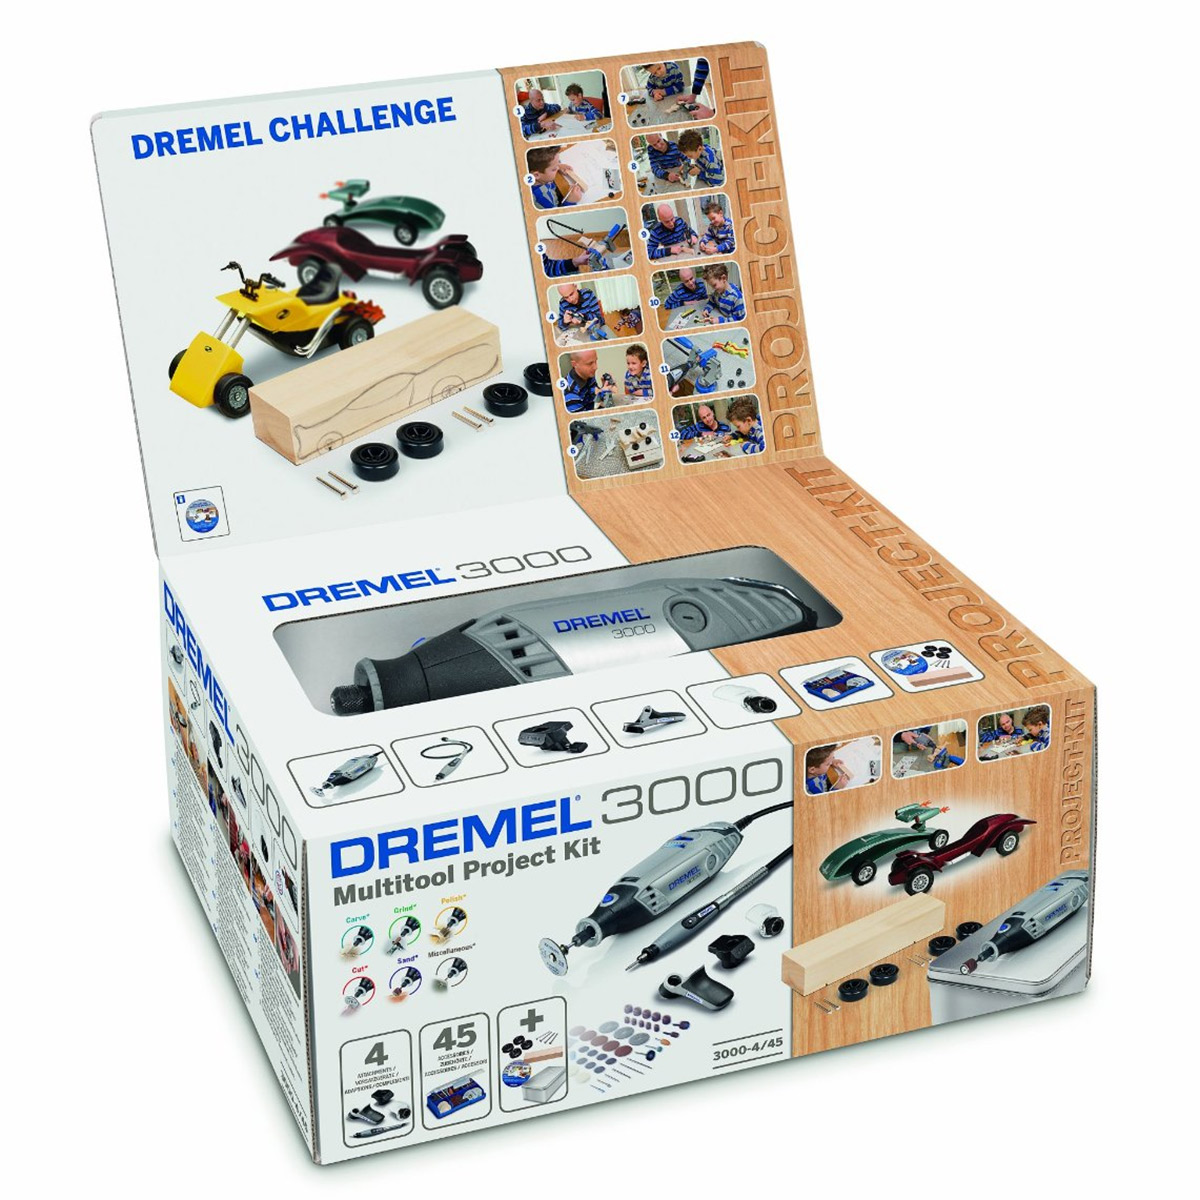 Dremel multitool 3000